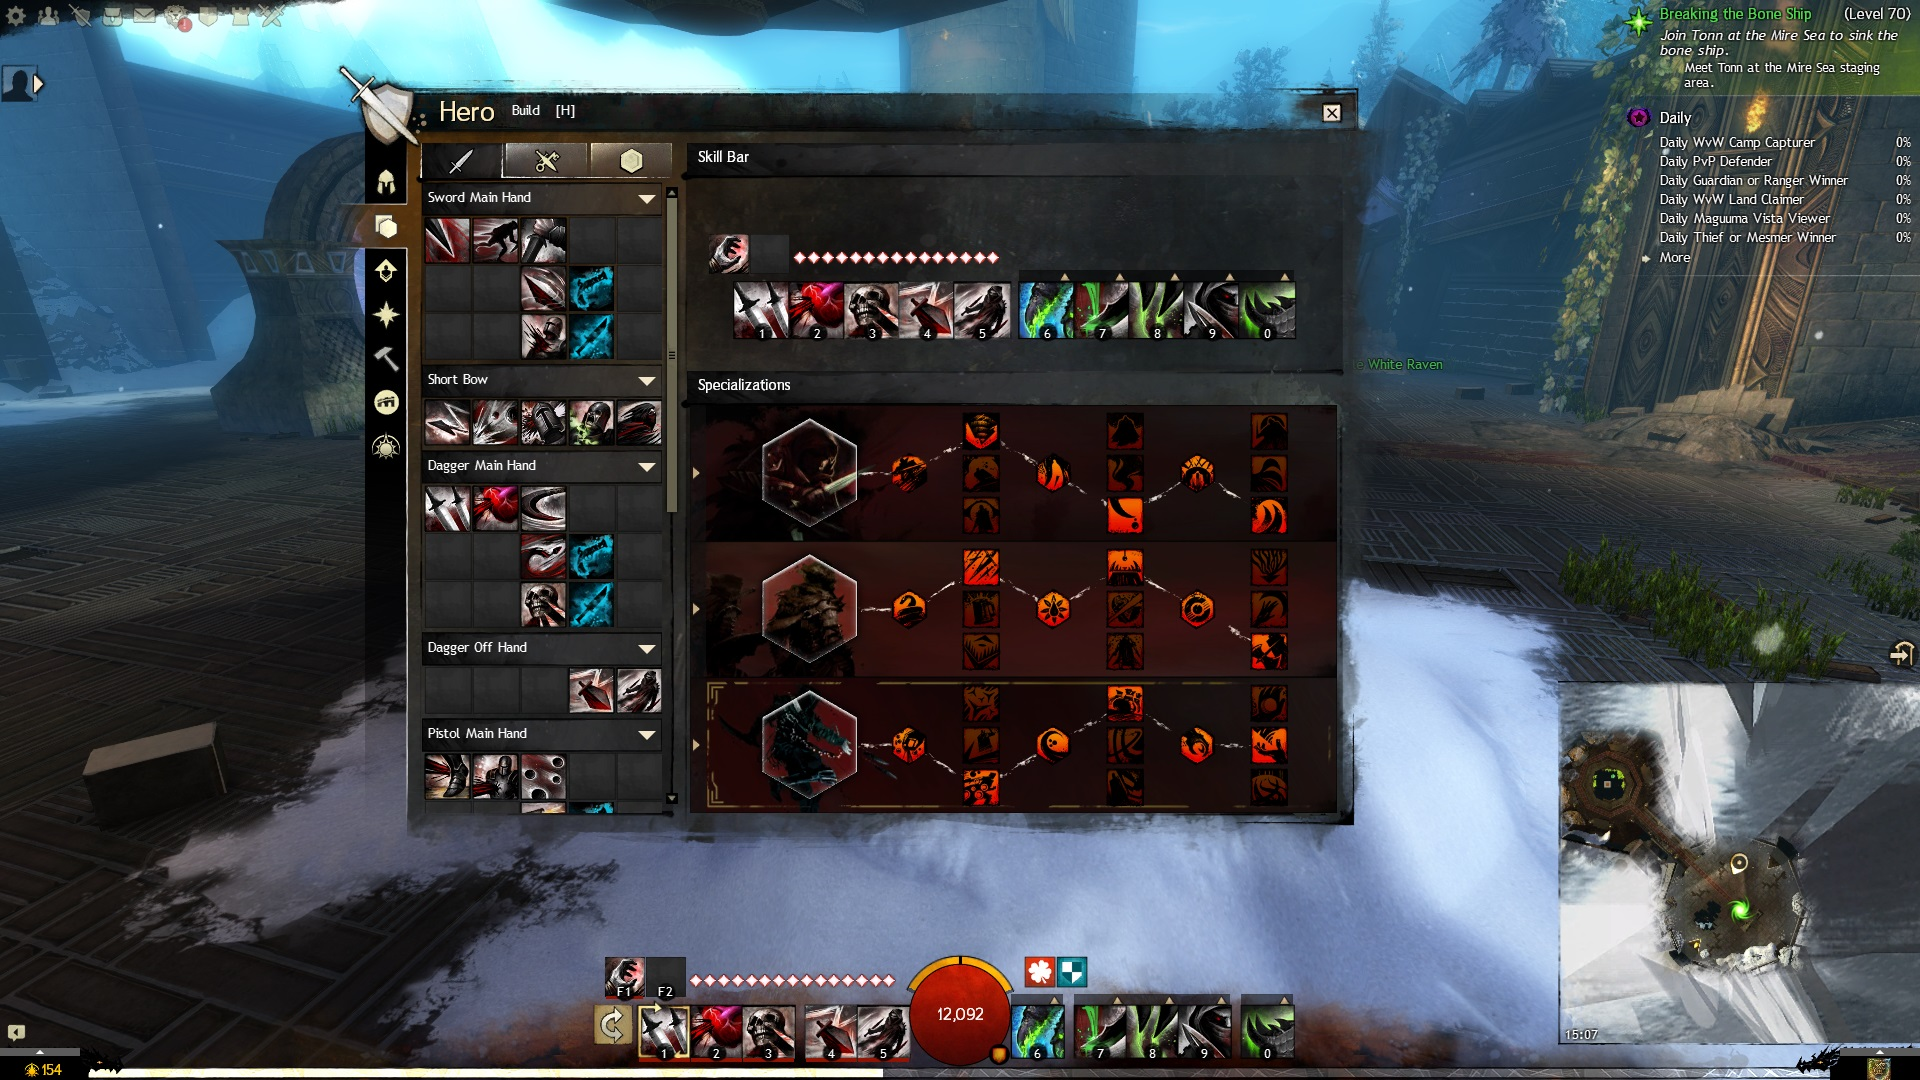 Guild wars 2 heart of thorns revenant burst damage build dps.